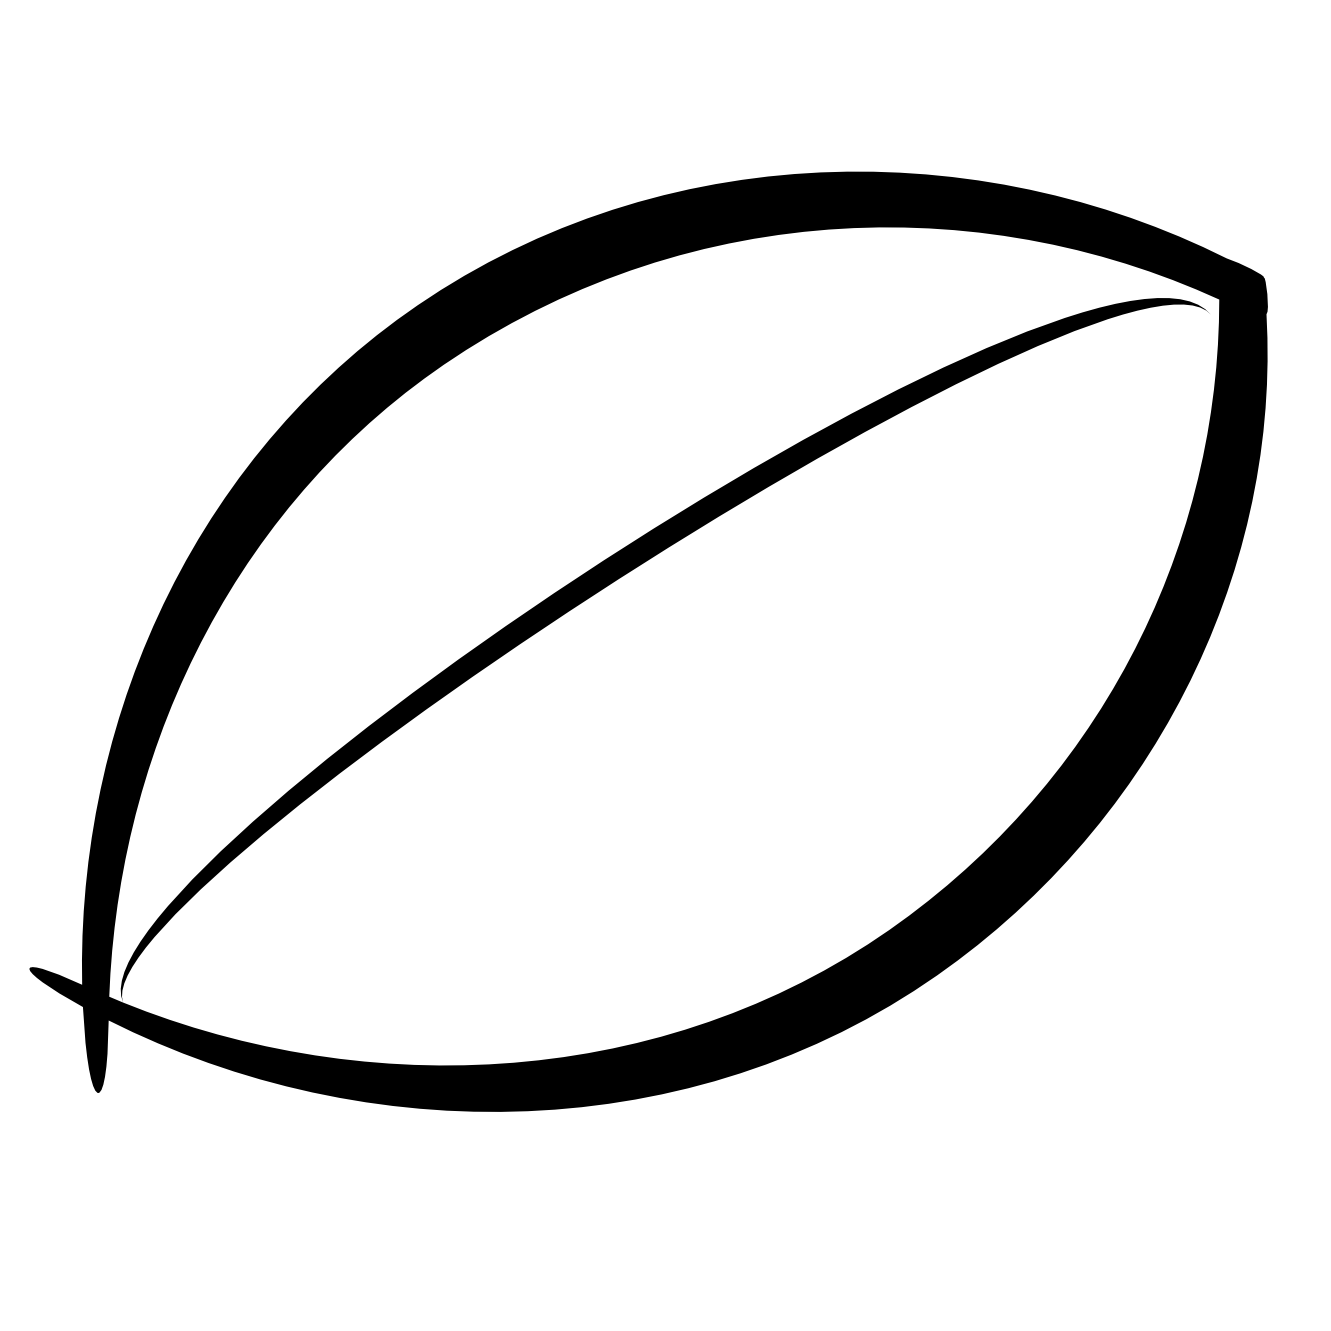 Clipart Leaf